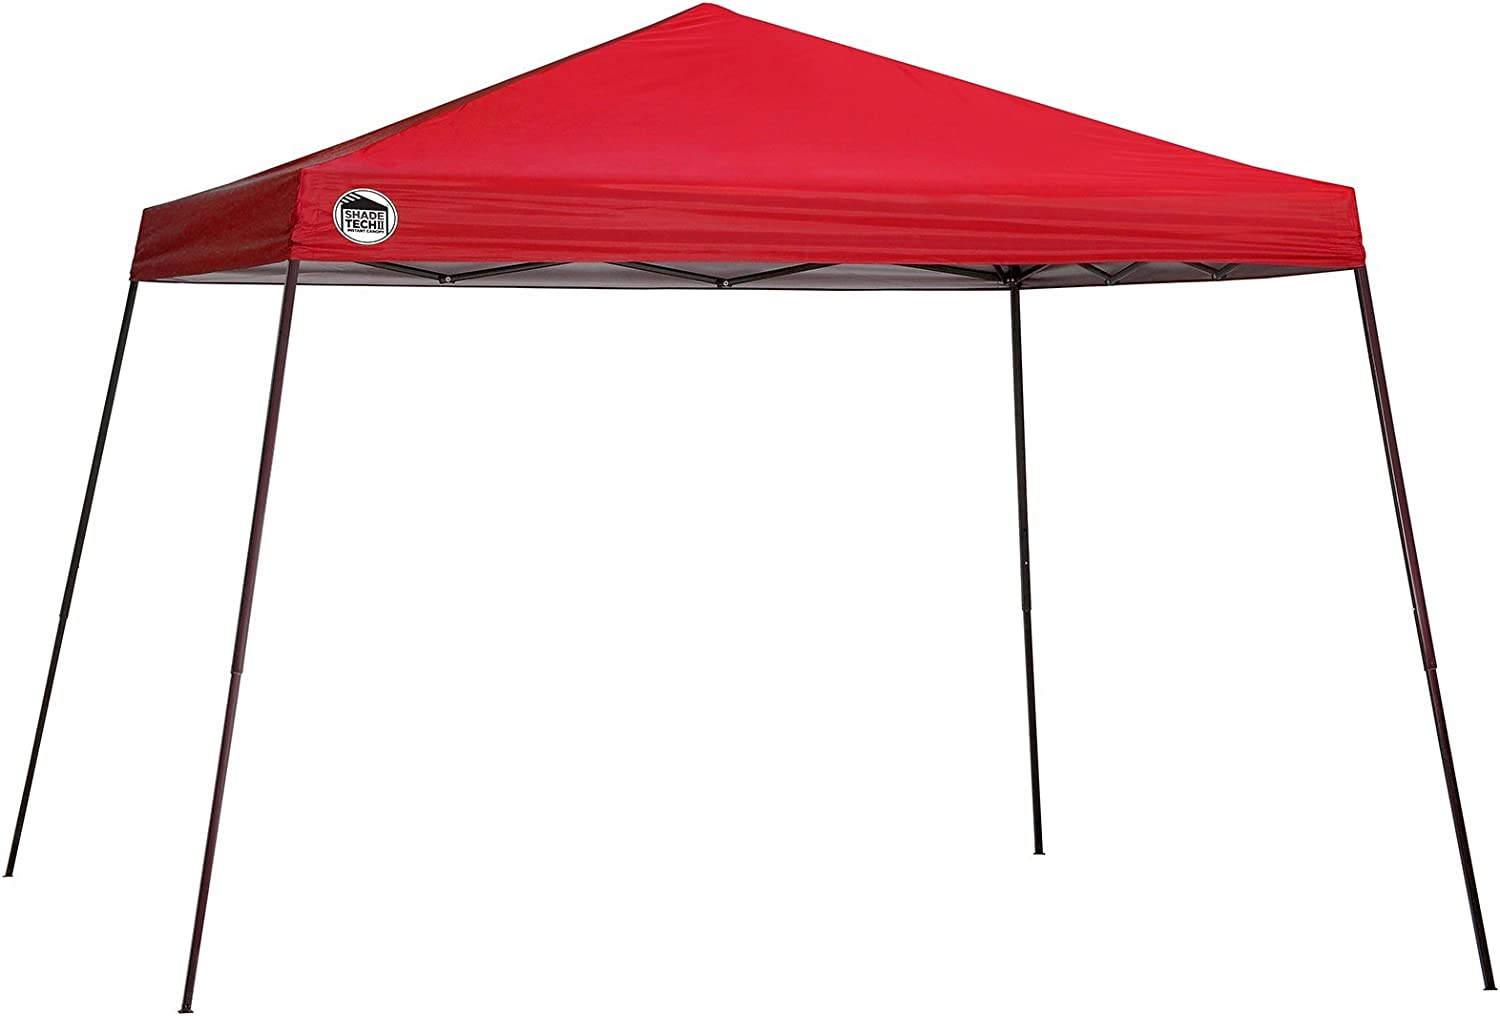 Quik Shade 12' x Tech 81 Feet Brand Manufacturer regenerated product new Slant Square of Le